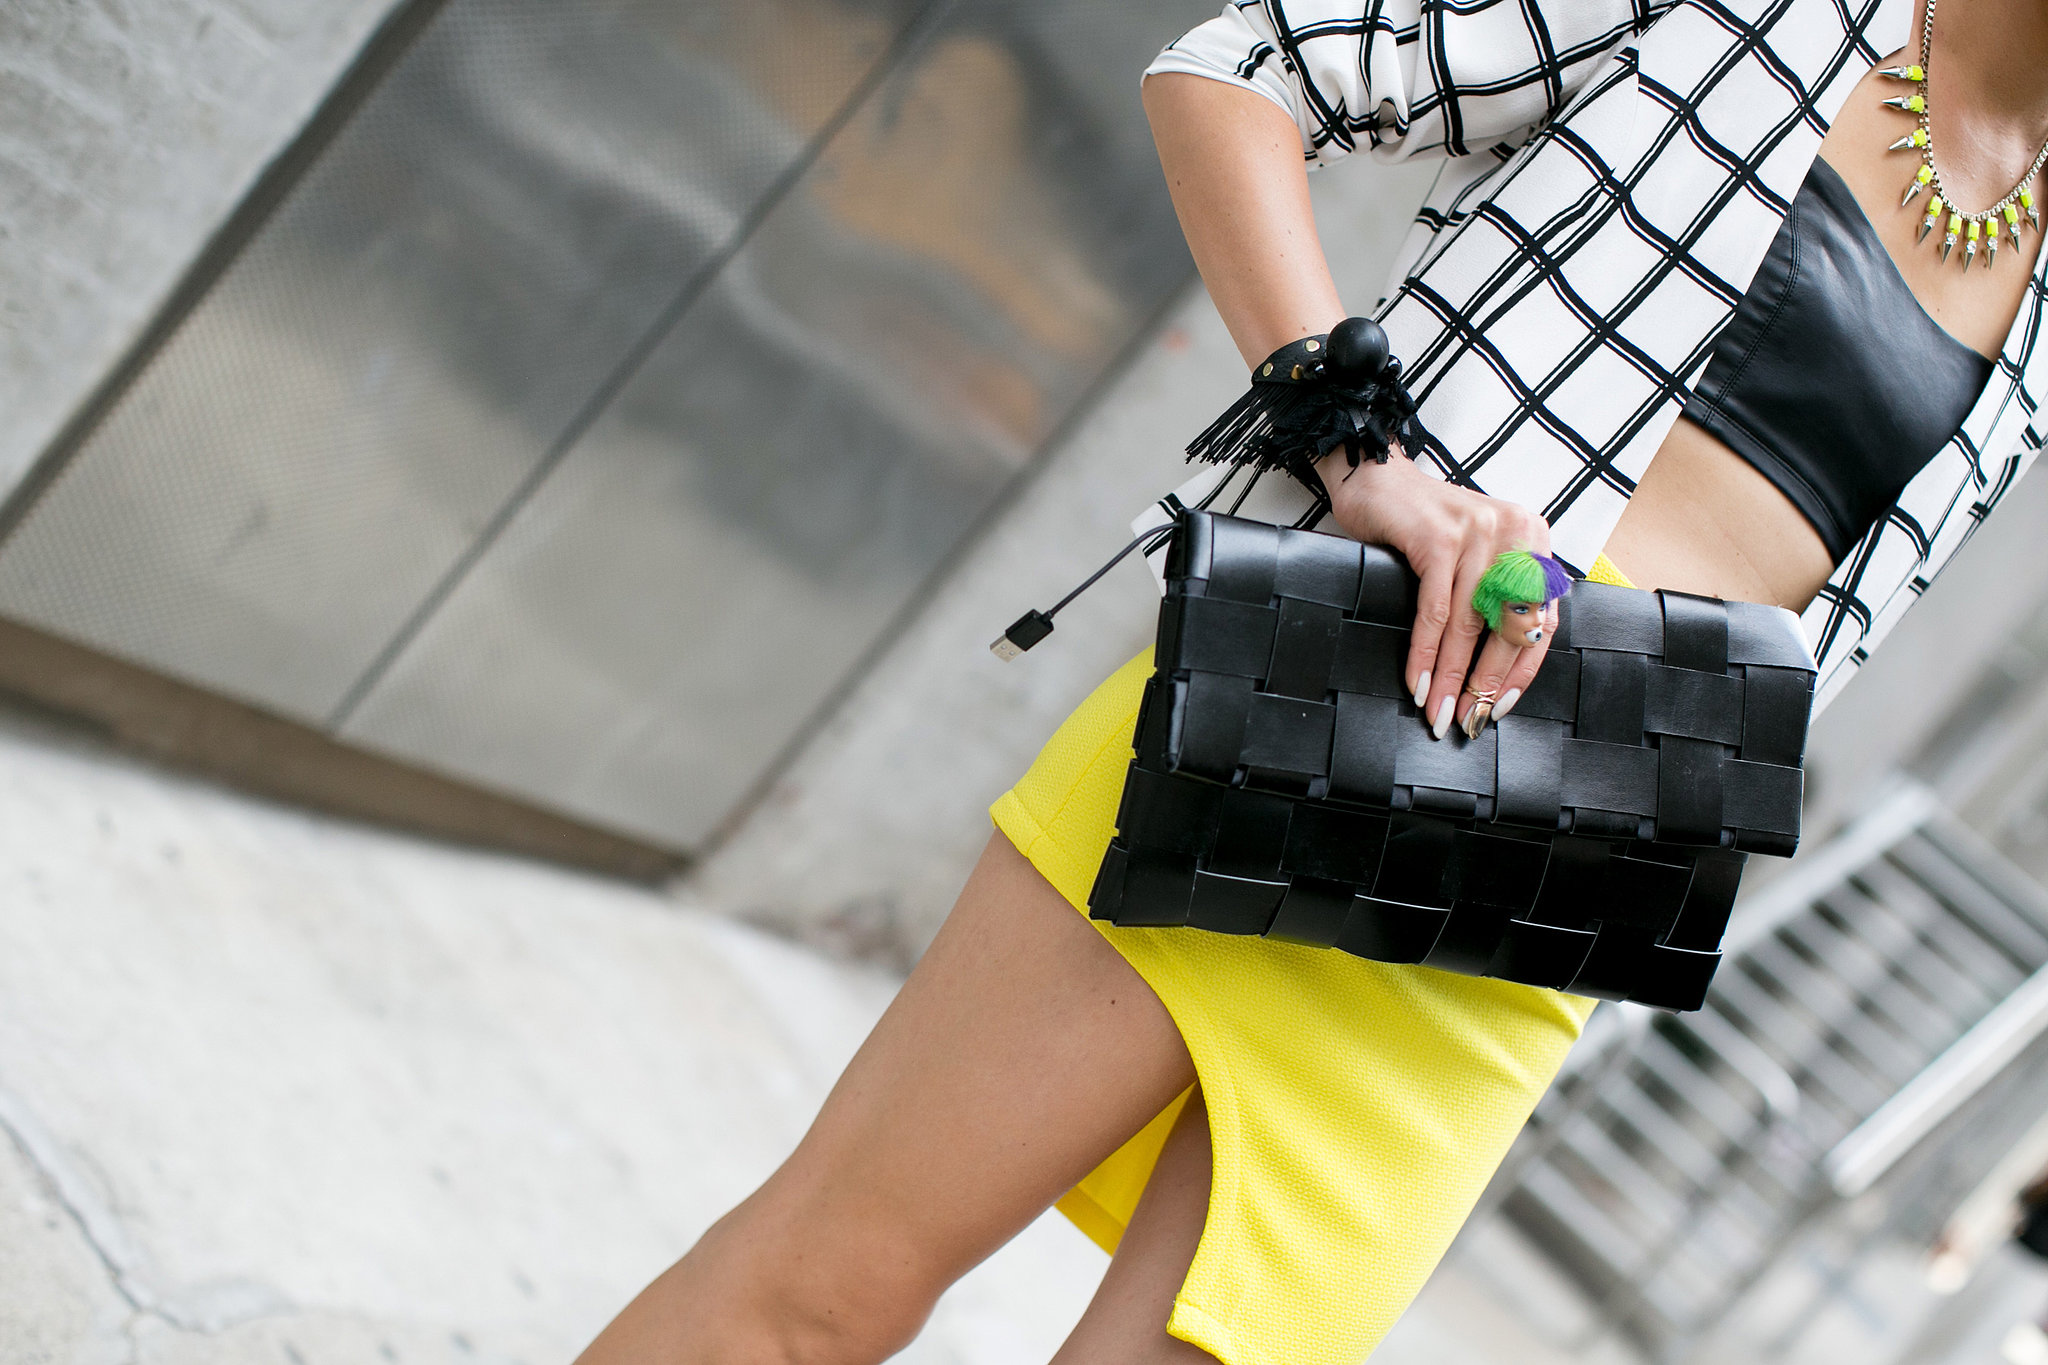 Just the way we like our clutches, oversize and roomy enough to hold everything we need.